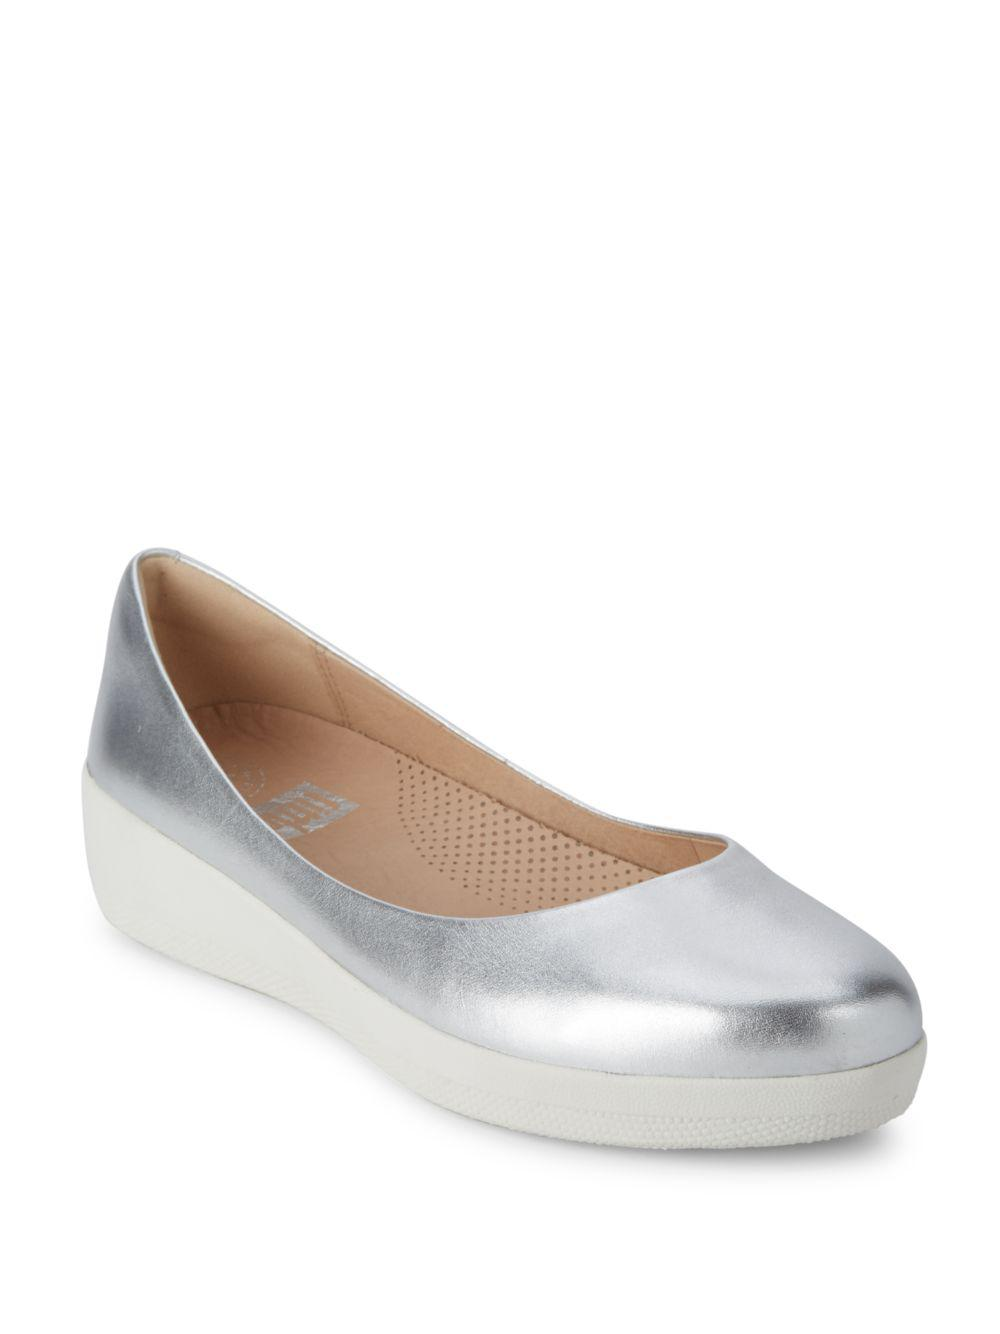 8cb3bb68c3510f Lyst - Fitflop Superballerina Tm Leather Low-cut Ballet Flats in ...